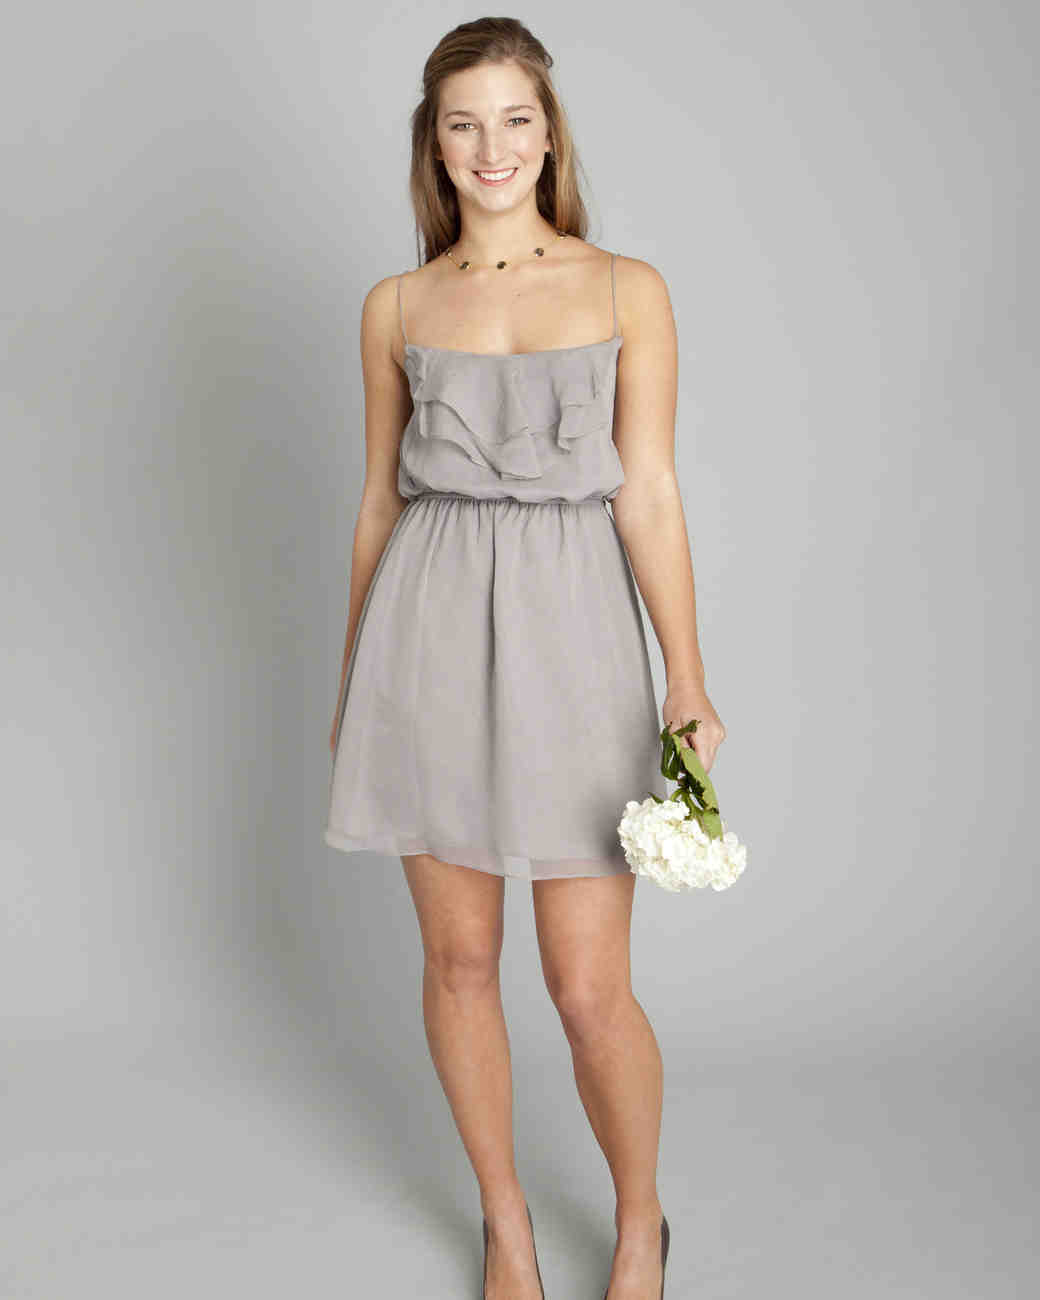 Bridesmaid Dresses: Bridesmaid Dresses For Beach Weddings